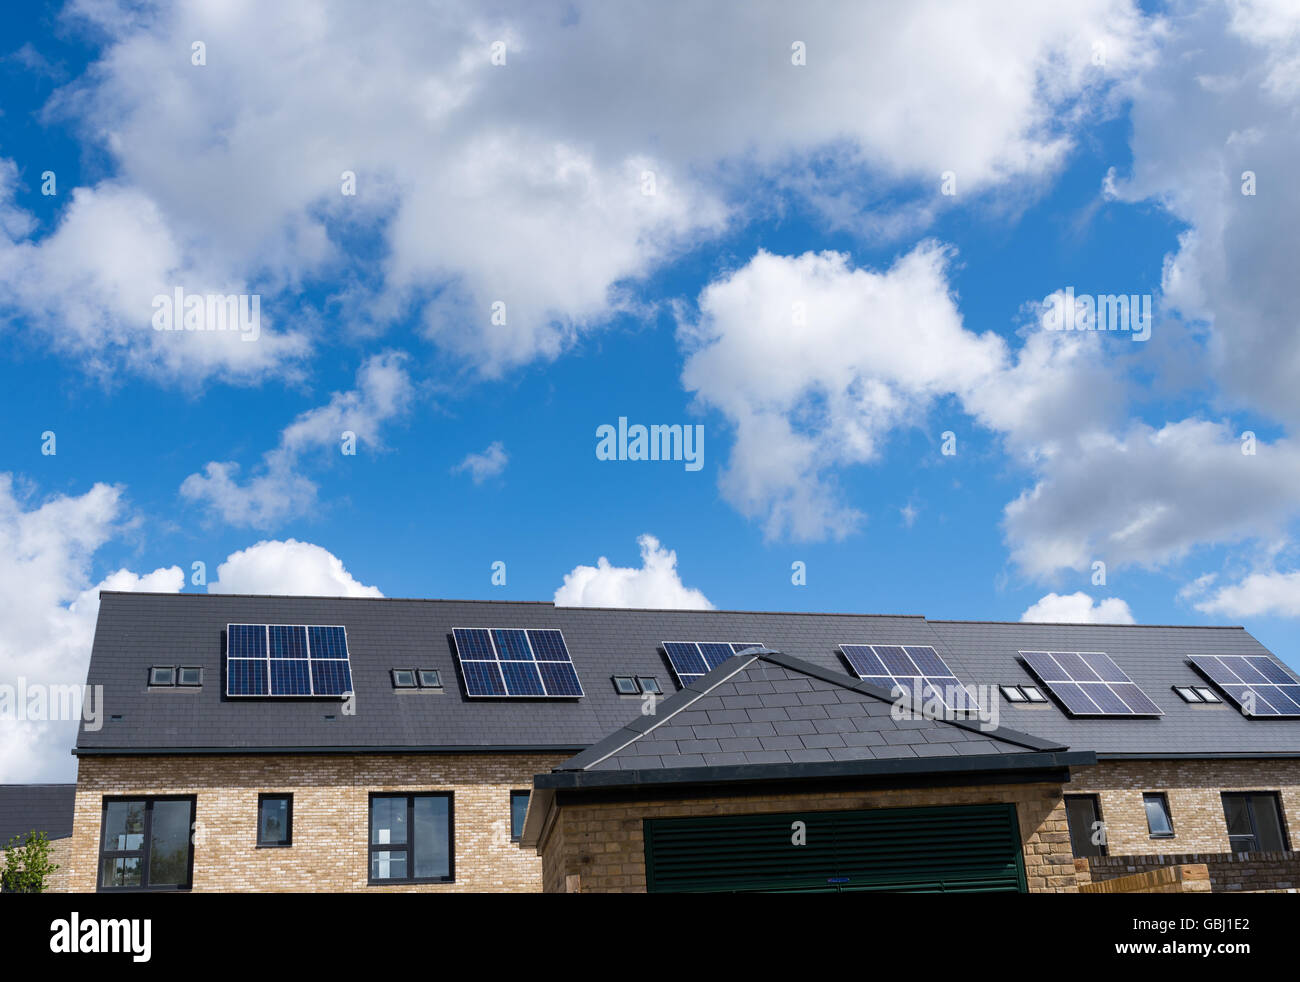 Domestic solar panels on the rooftop of newly built houses - Stock Image